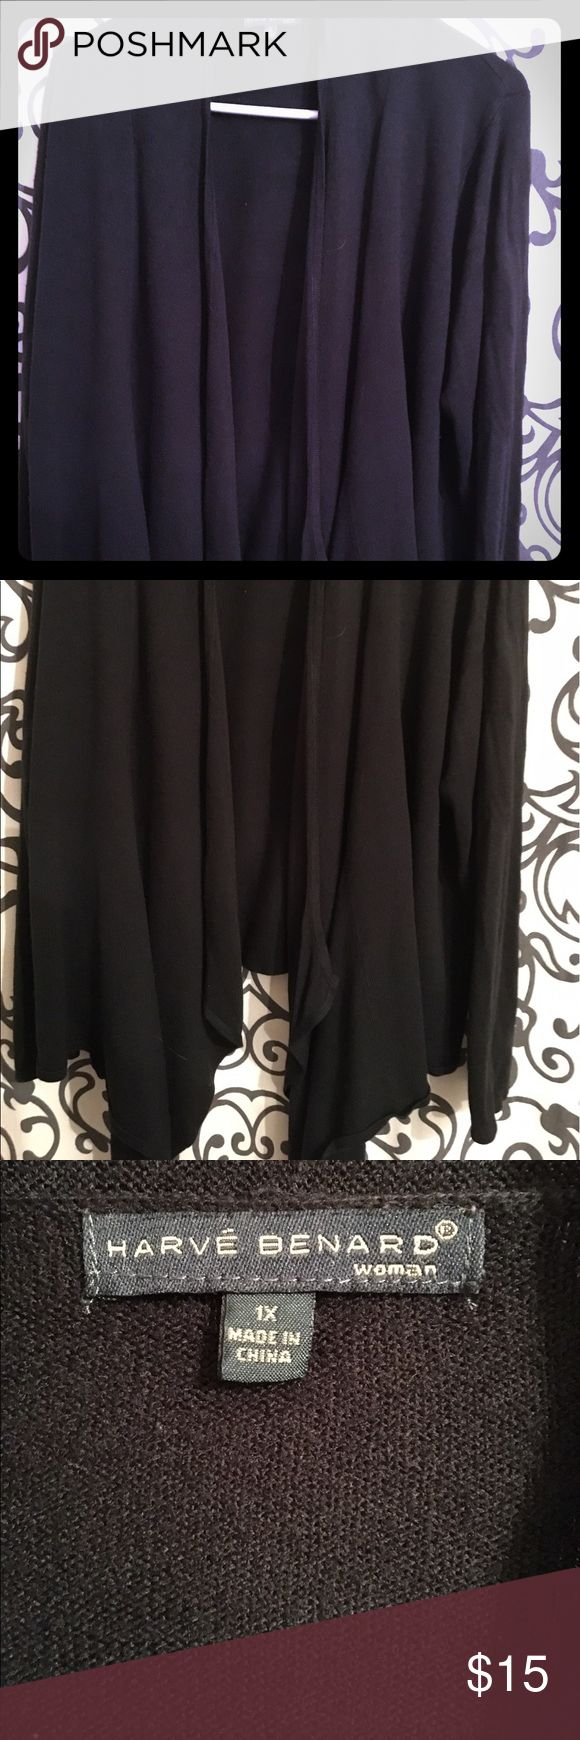 Harve Bernard Shrug 🌺Like New 🌺 Beautiful soft warm material bought this piece at TJ max I used it a few times it's really pretty on . Harve Benard Sweaters Shrugs & Ponchos